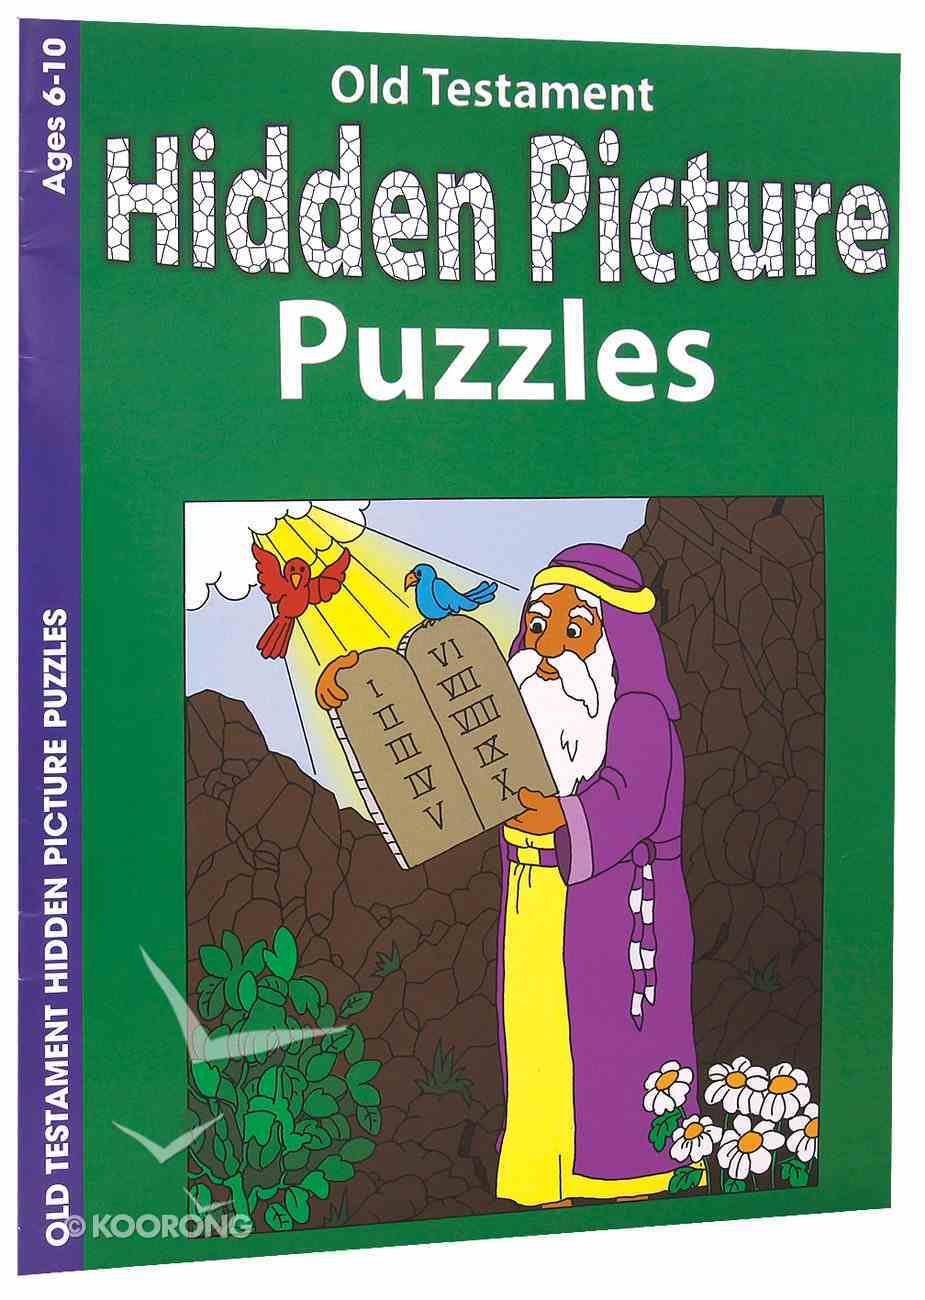 Old Testament Hidden Picture Puzzles (Ages 6-10, Reproducible) (Warner Press Colouring & Activity Books Series) Paperback